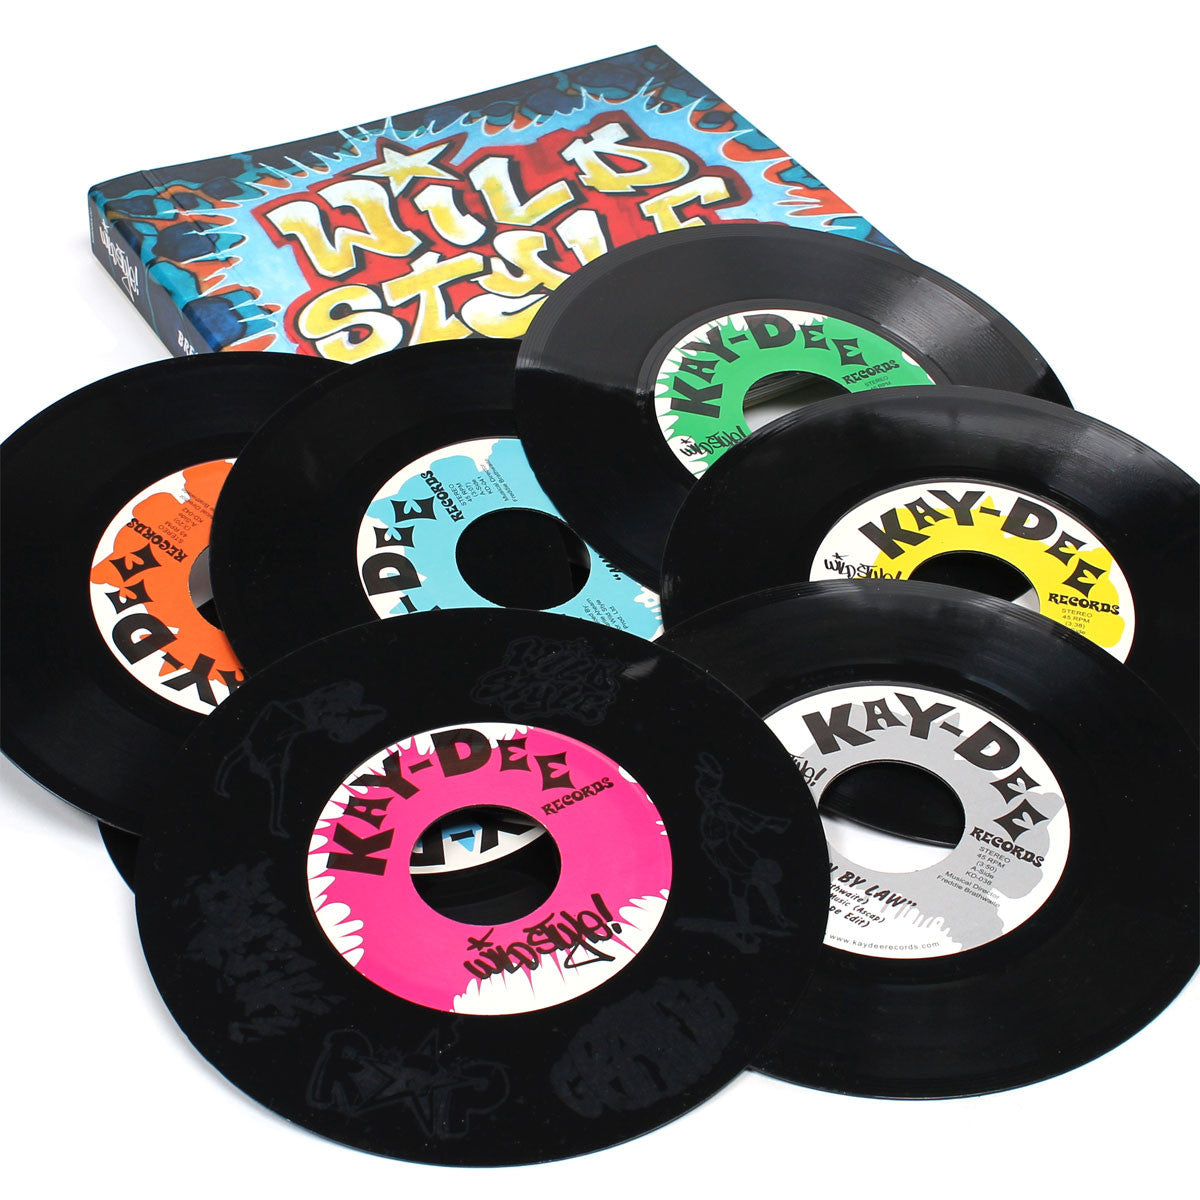 "Kenny Dope: Wild Style Breakbeats 7x7"" Vinyl + Book open page lay down detail"